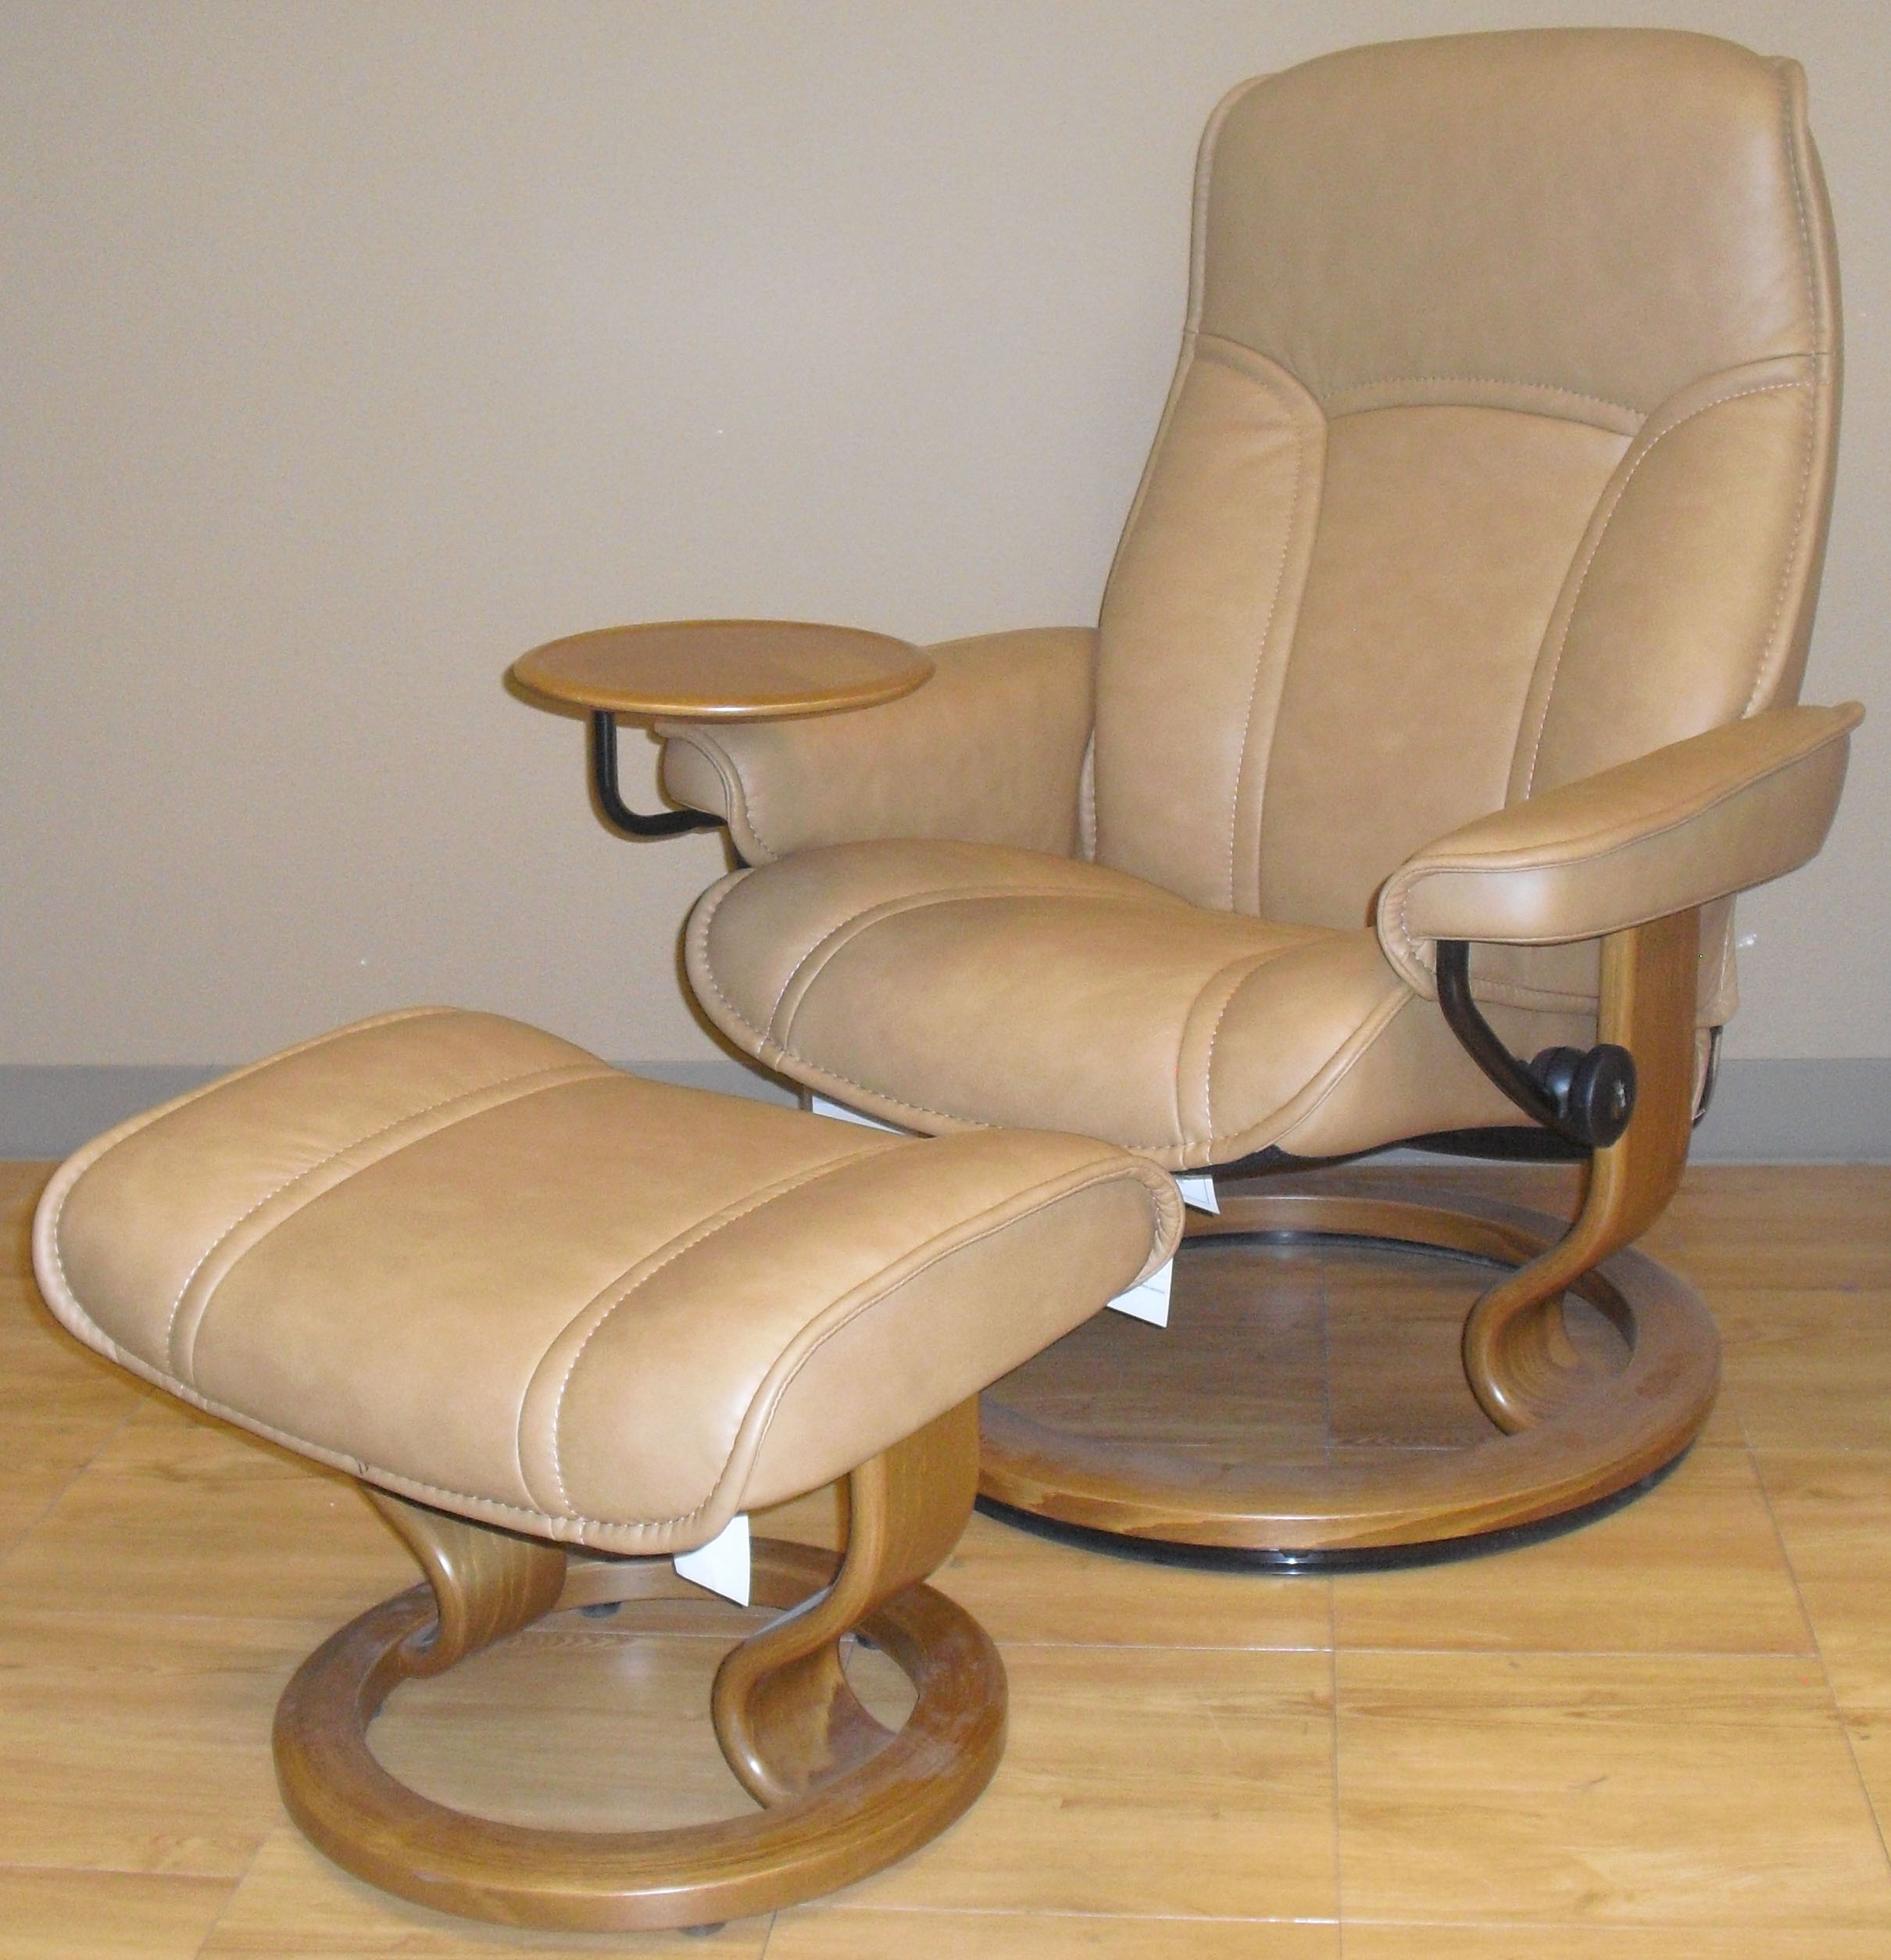 Stressless Sofa Dealers Stressless Governor Recliner Chair And Ottoman Clearance Sale